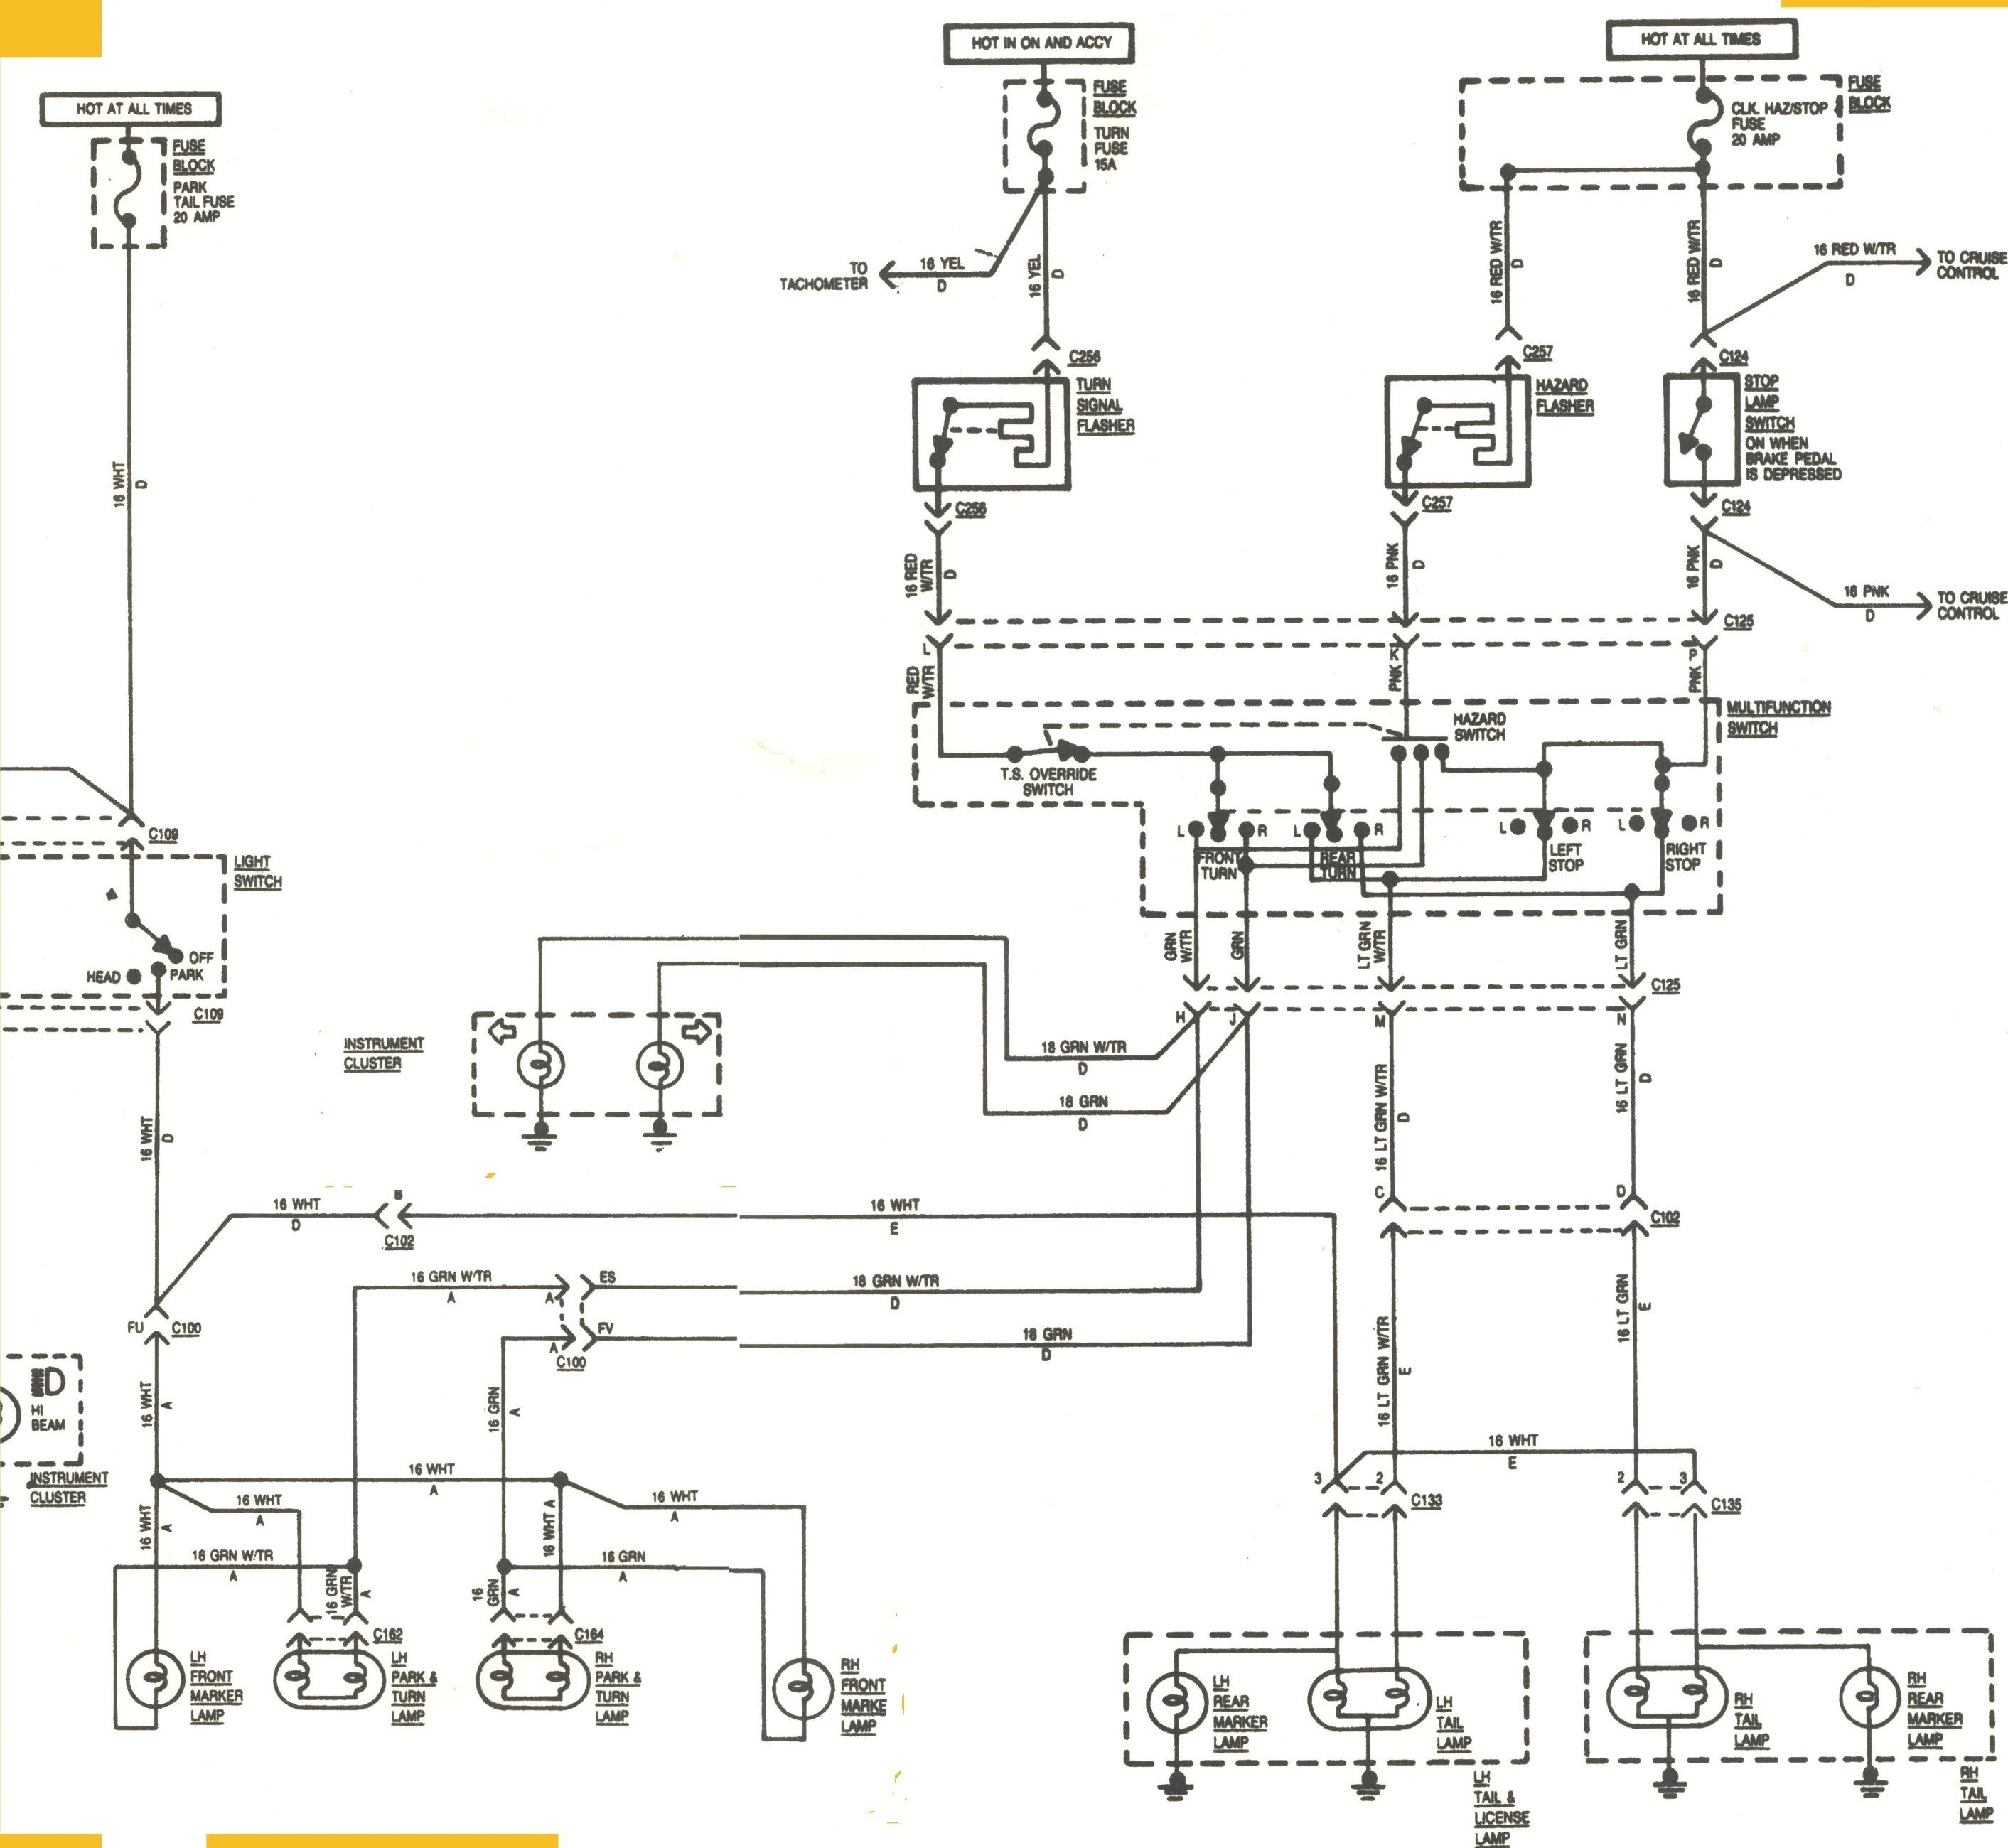 Jeep Wrangler Horn Wiring Diagram | Wiring Diagram on ford bronco wiring diagram, 1991 jeep cherokee fuse box diagram, jeep jk wiring harness, acura tl wiring diagram, chevrolet impala wiring diagram, jeep cj7 wiring-diagram, jeep starter wiring, 2007 jeep liberty wiring diagram, volkswagen golf wiring diagram, suzuki xl7 wiring diagram, volkswagen cabriolet wiring diagram, 95 jeep wiring diagram, ford thunderbird wiring diagram, jeep grand cherokee fuse box diagram, 91 silverado wiring diagram, jeep wrangler, jeep zj wiring diagram, jeep to chevy wiring harness, cadillac xlr wiring diagram, chrysler crossfire wiring diagram,